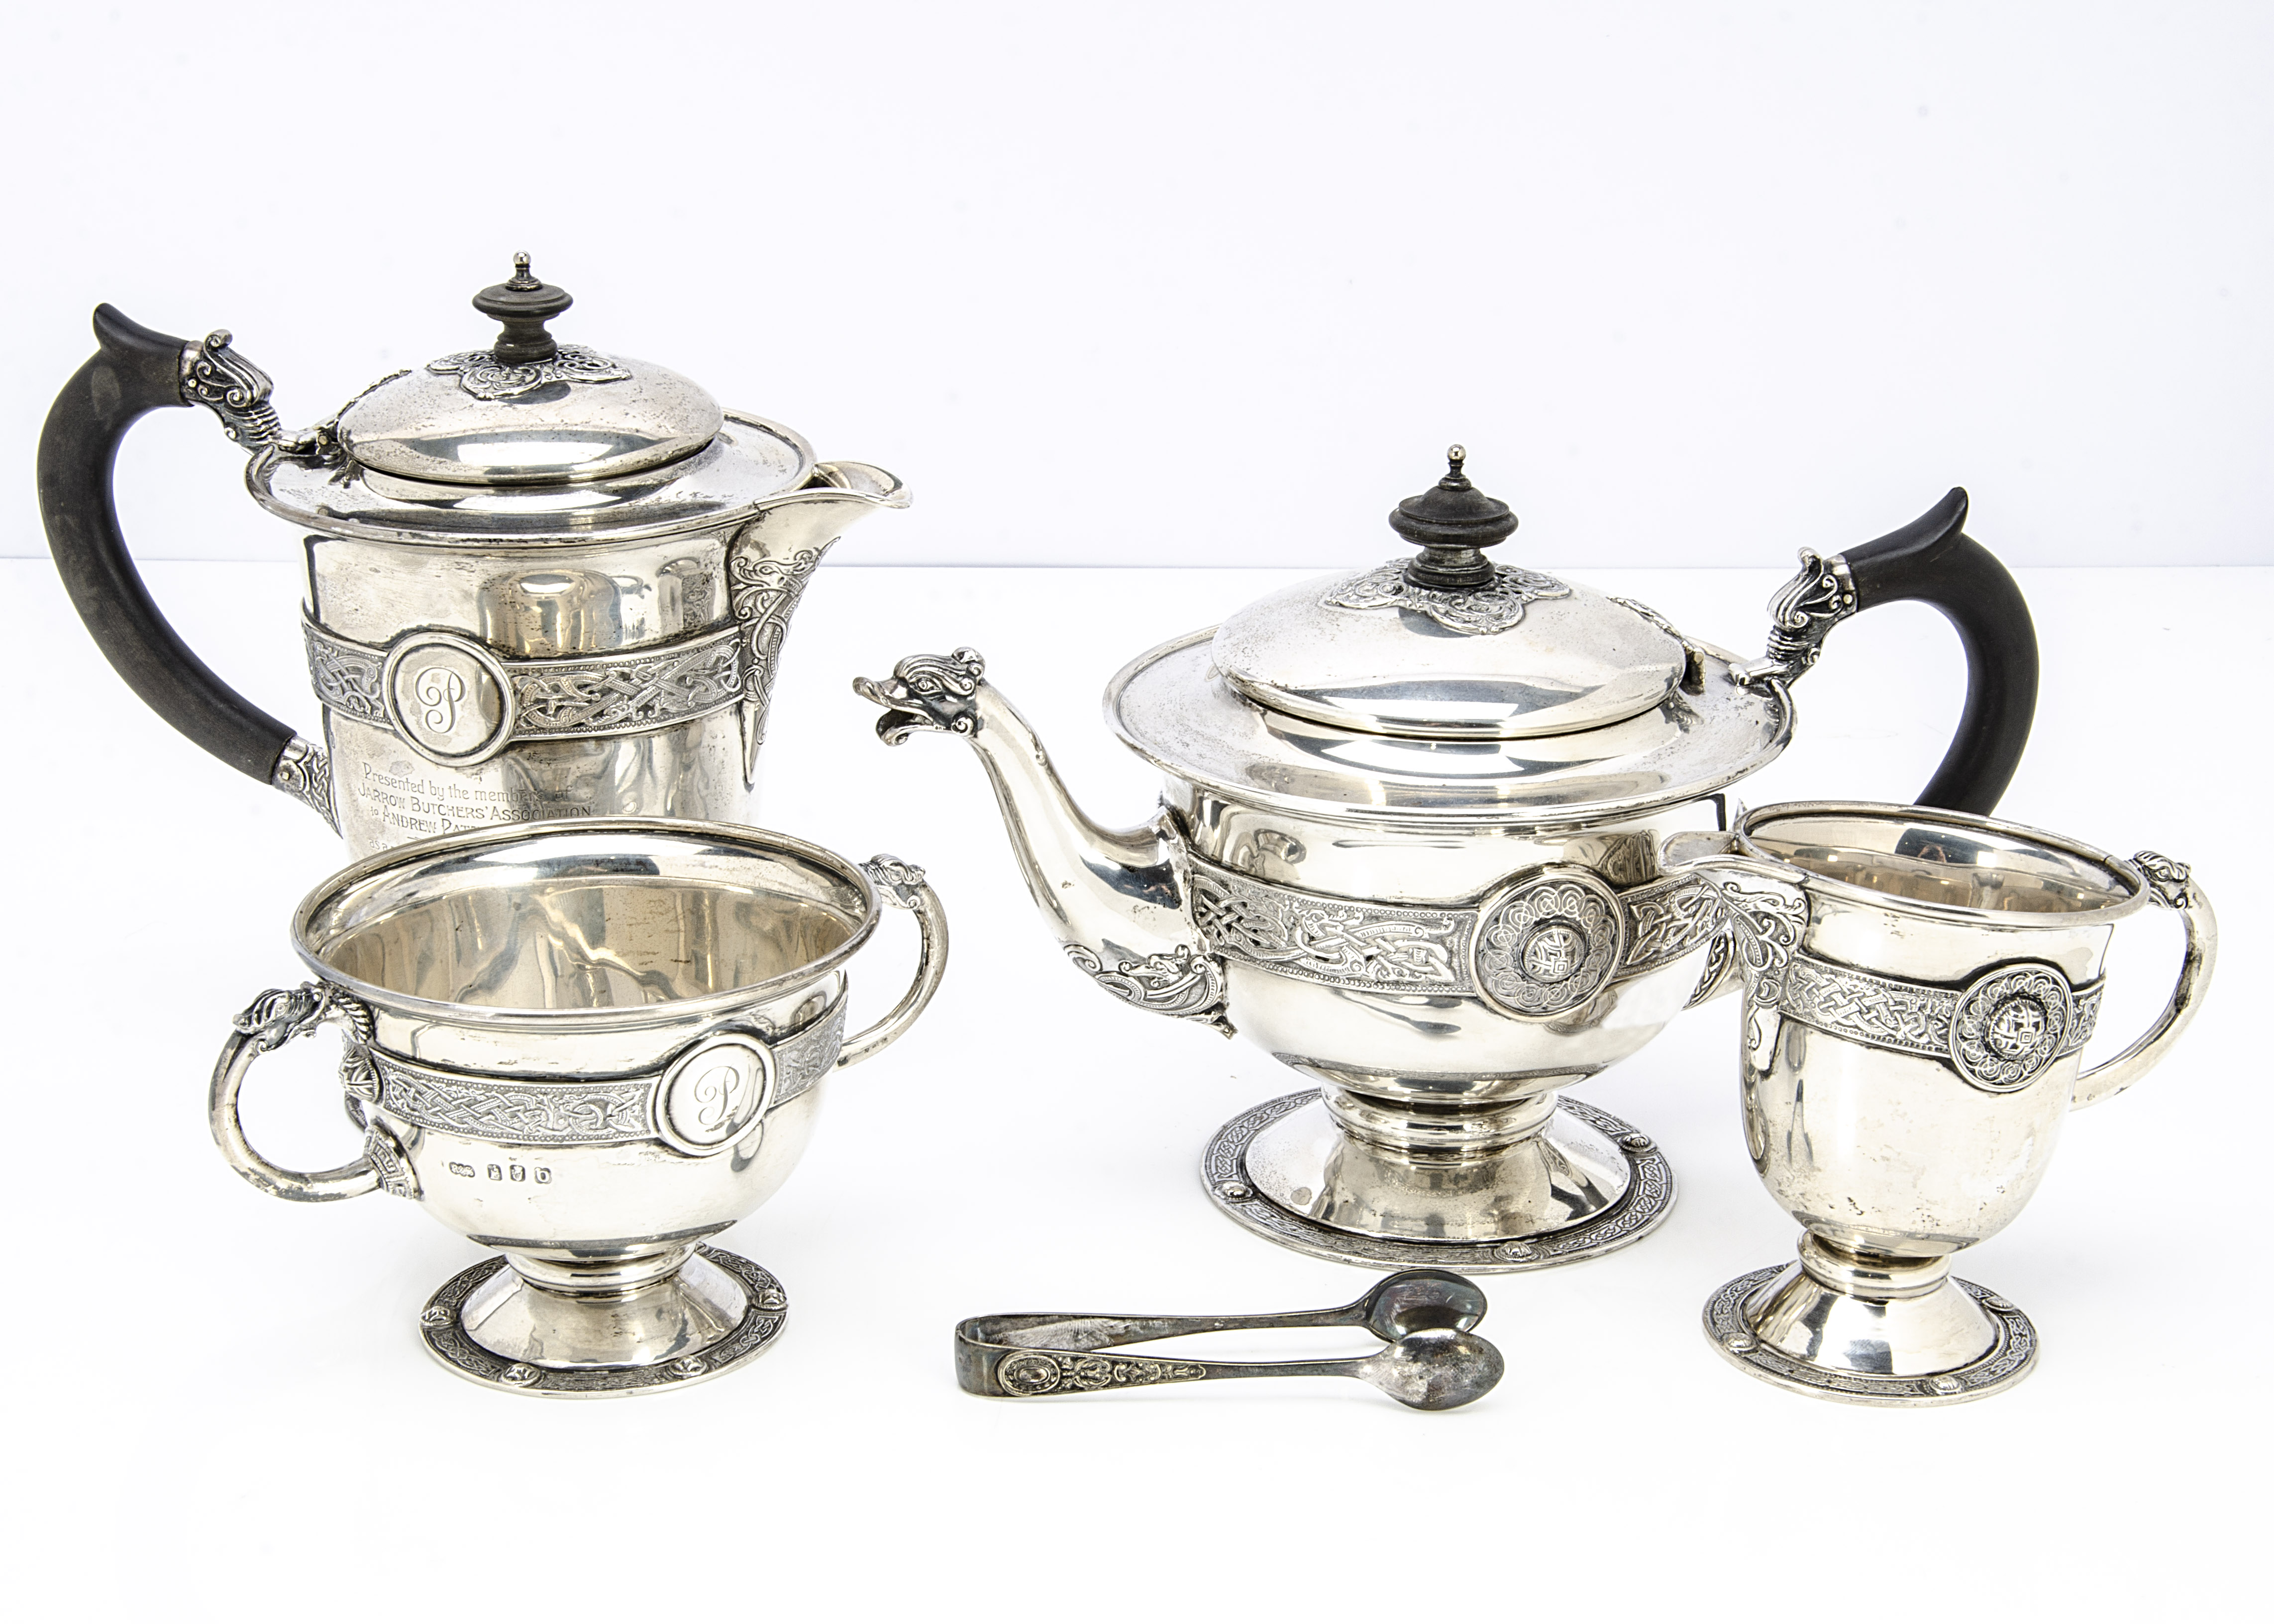 An early 20th Century four piece Irish silver tea service by Reid & Sons of Newcastle, comprising